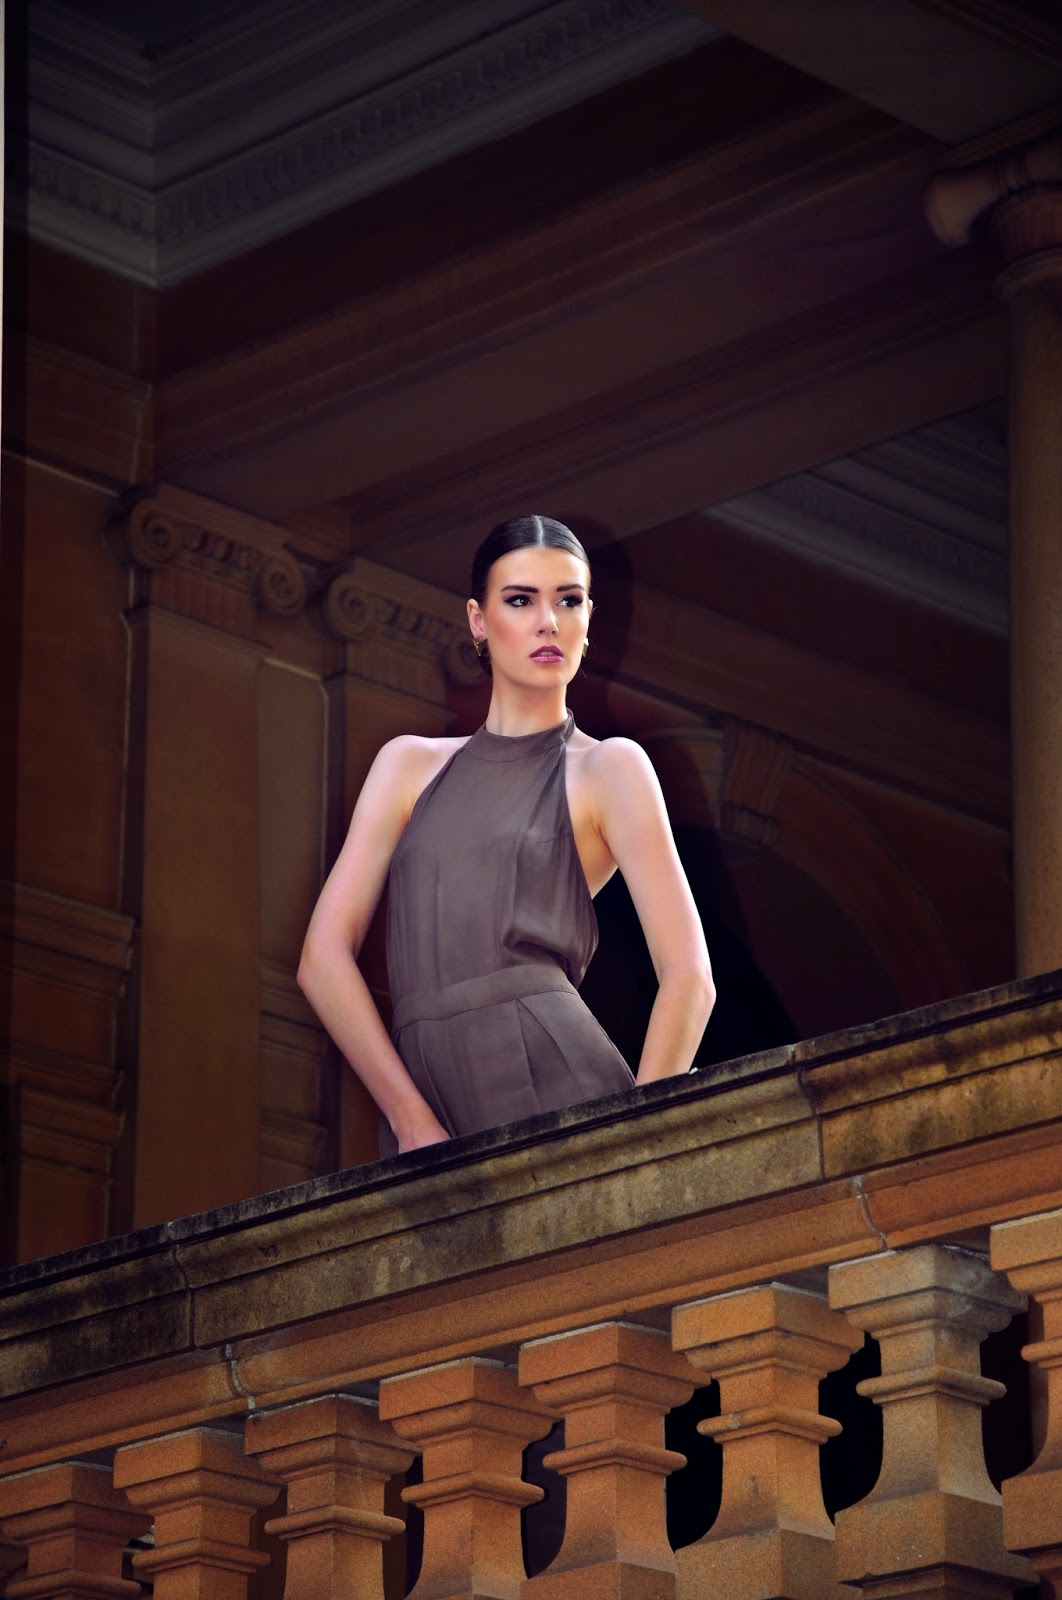 commit dating ariane kostenlos spielen are absolutely